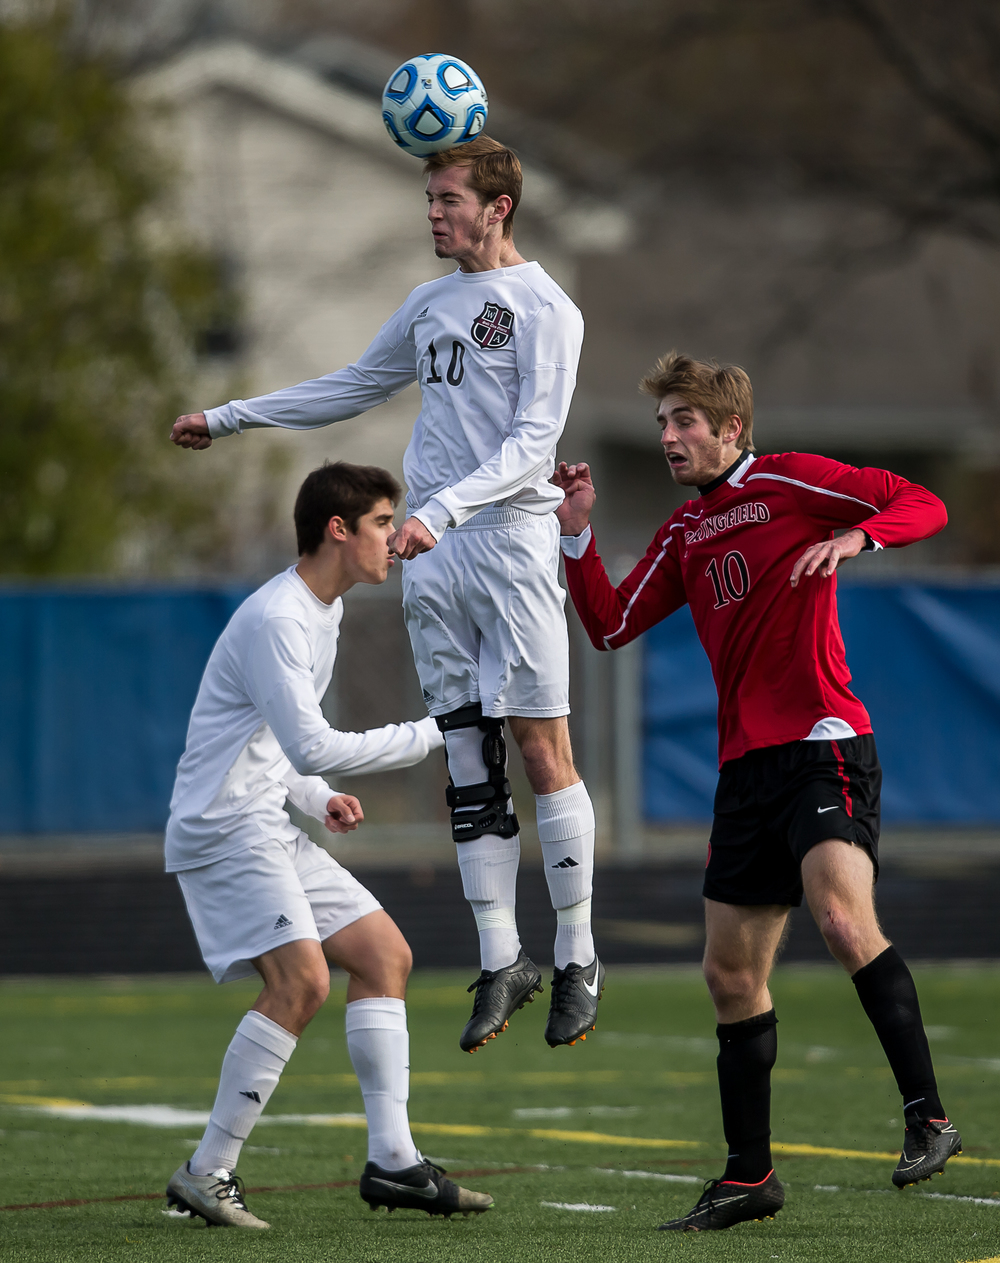 West Chicago Wheaton Academy's Jacob Kapitaniuk (10) wins a header out of the air over Springfield's Evan Kuhn (10) in the first half during the IHSA Class 2A Soccer State Final Tournament semifinals at Hoffman Estates High School, Friday, Nov. 7, 2014, in Hoffman Estates, Ill. Justin L. Fowler/The State Journal-Register